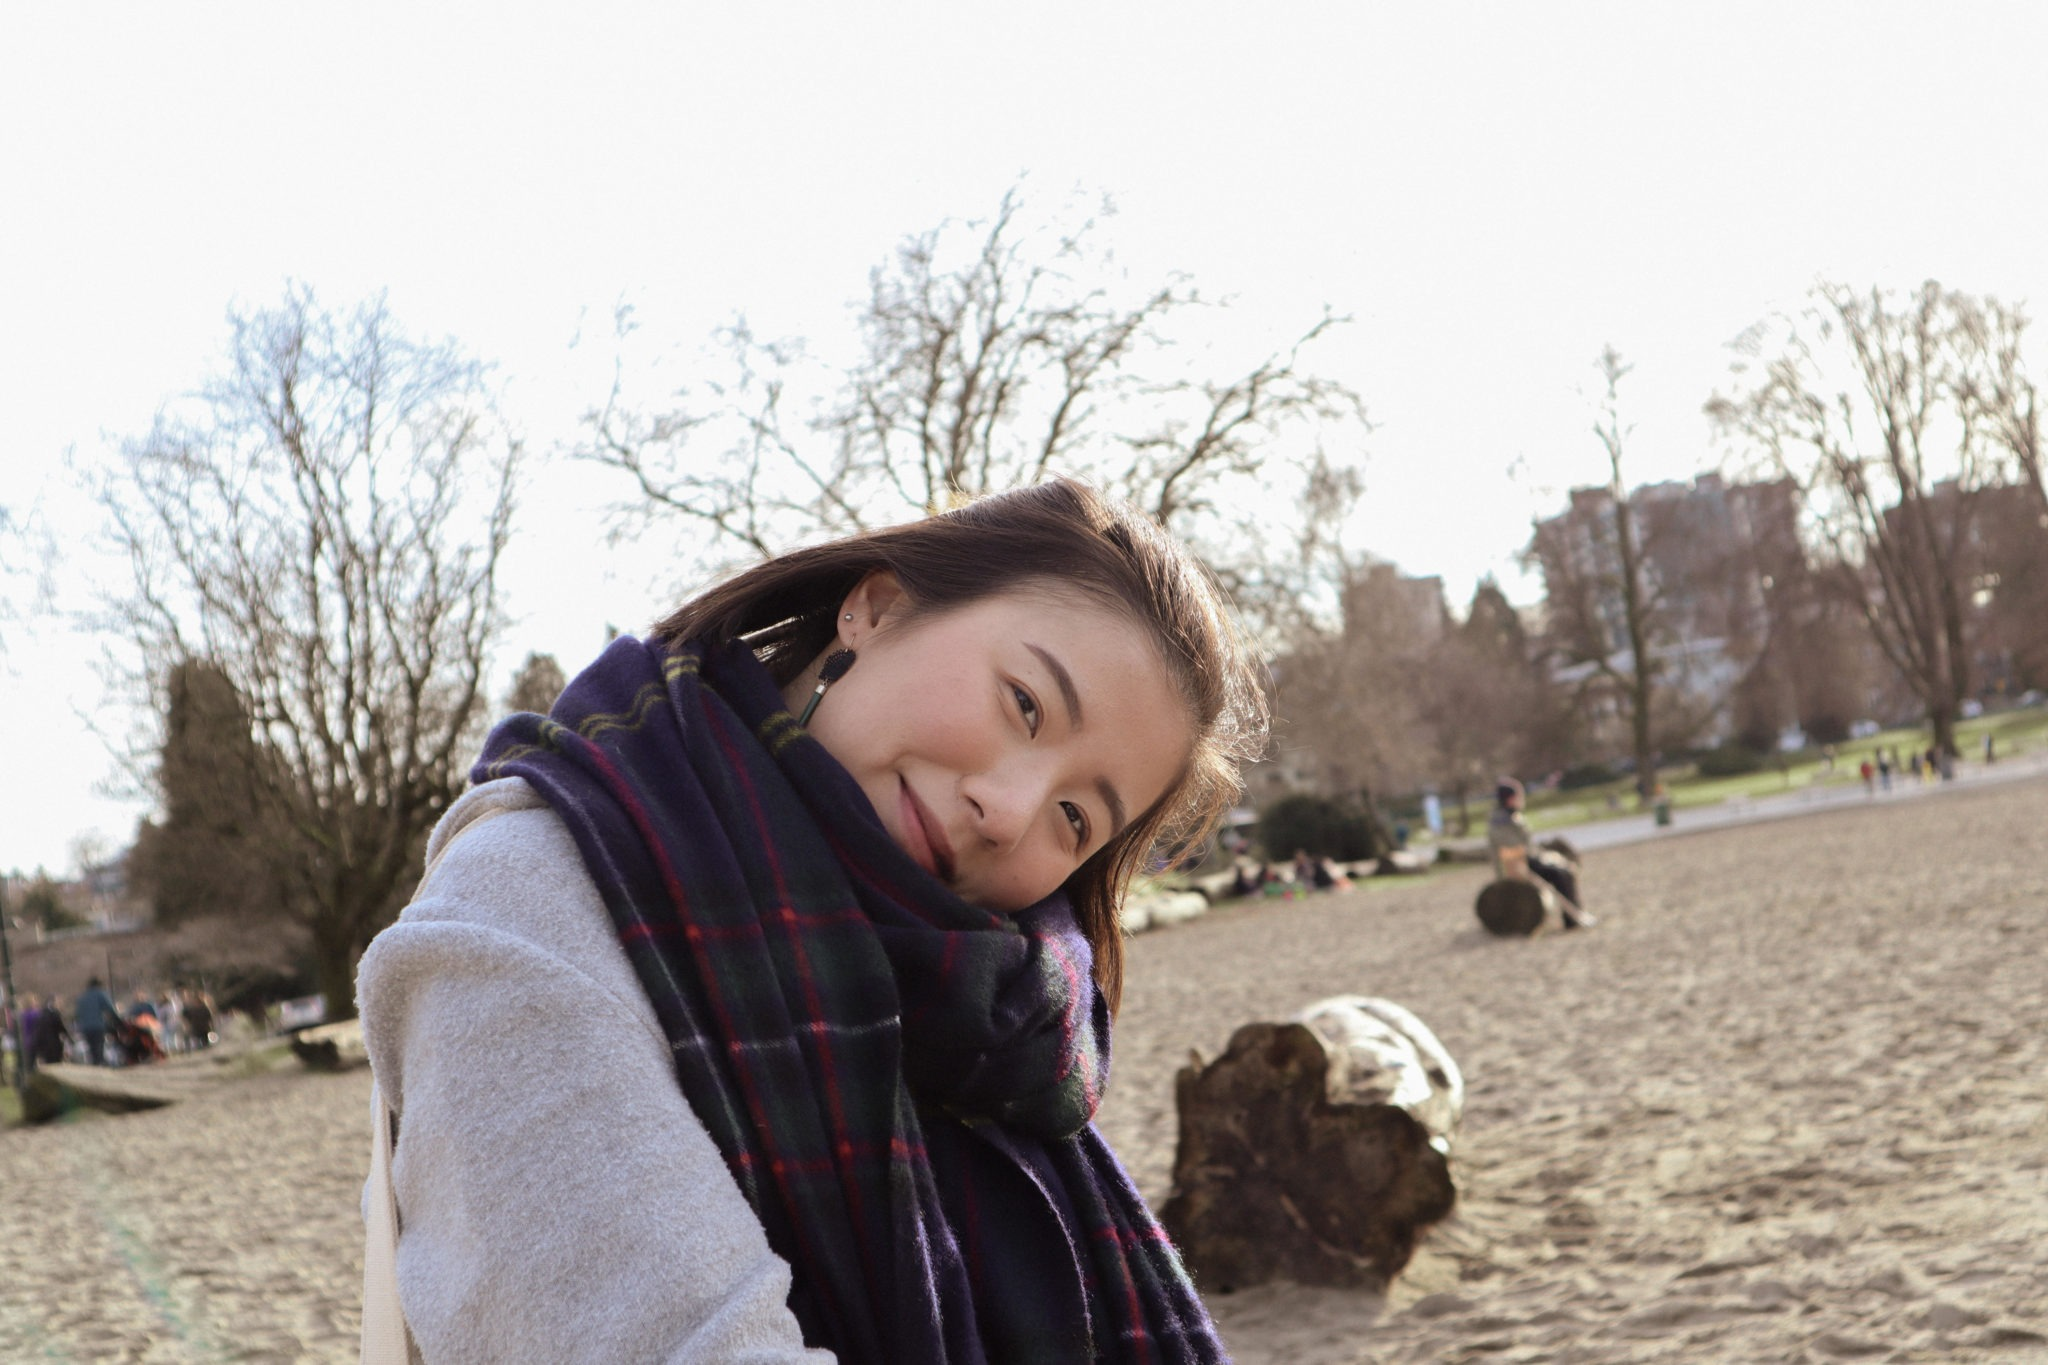 A person in a plaid scarf on a winter beach smiling with their head angled sideways